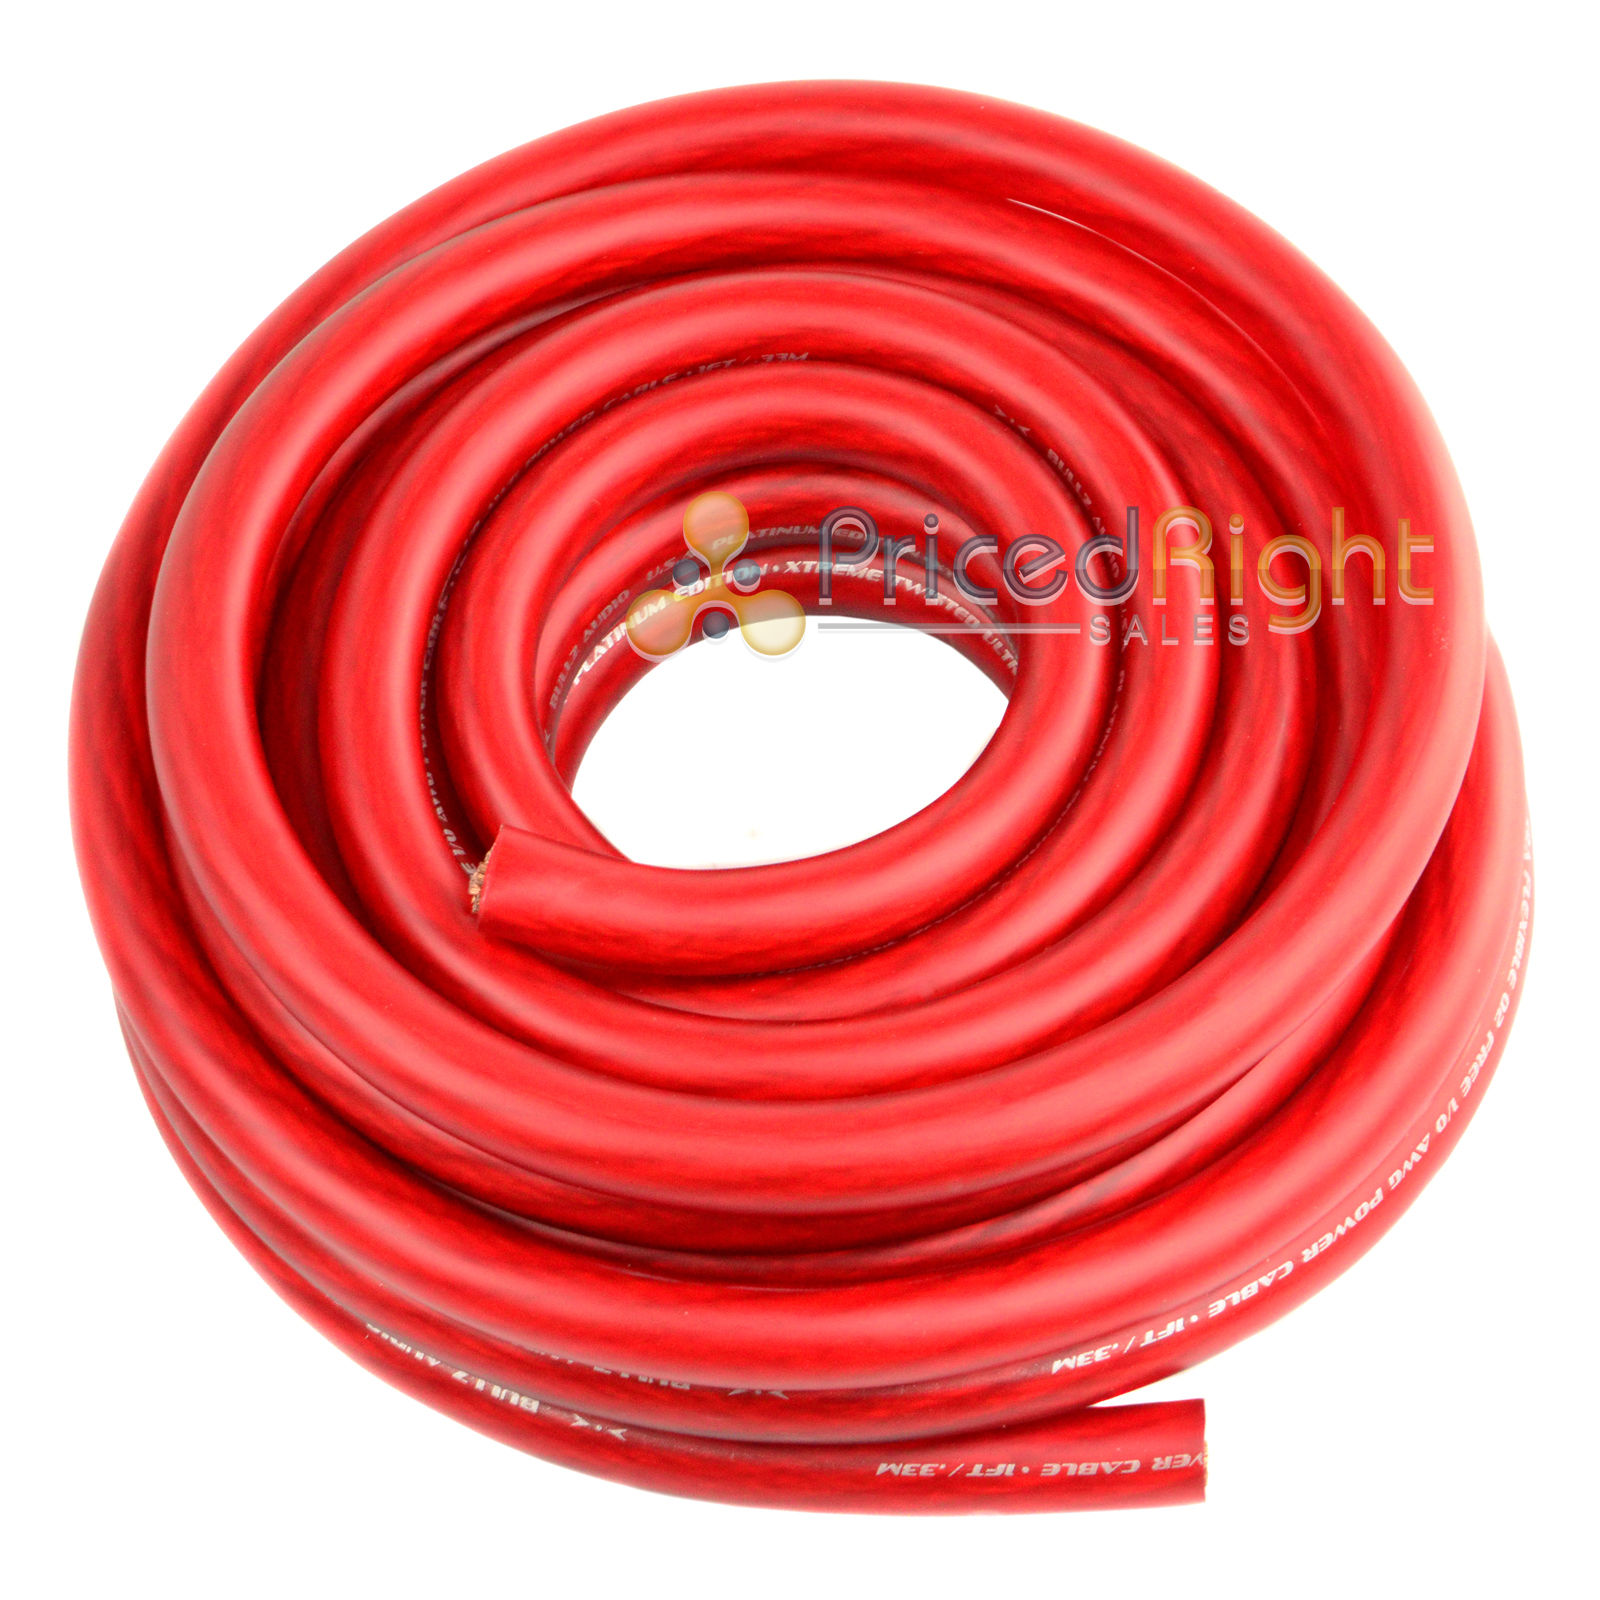 0 Gauge 25 Feet Wire 1//0 AWG High Performance Flexible Amplifier Power Cable Red